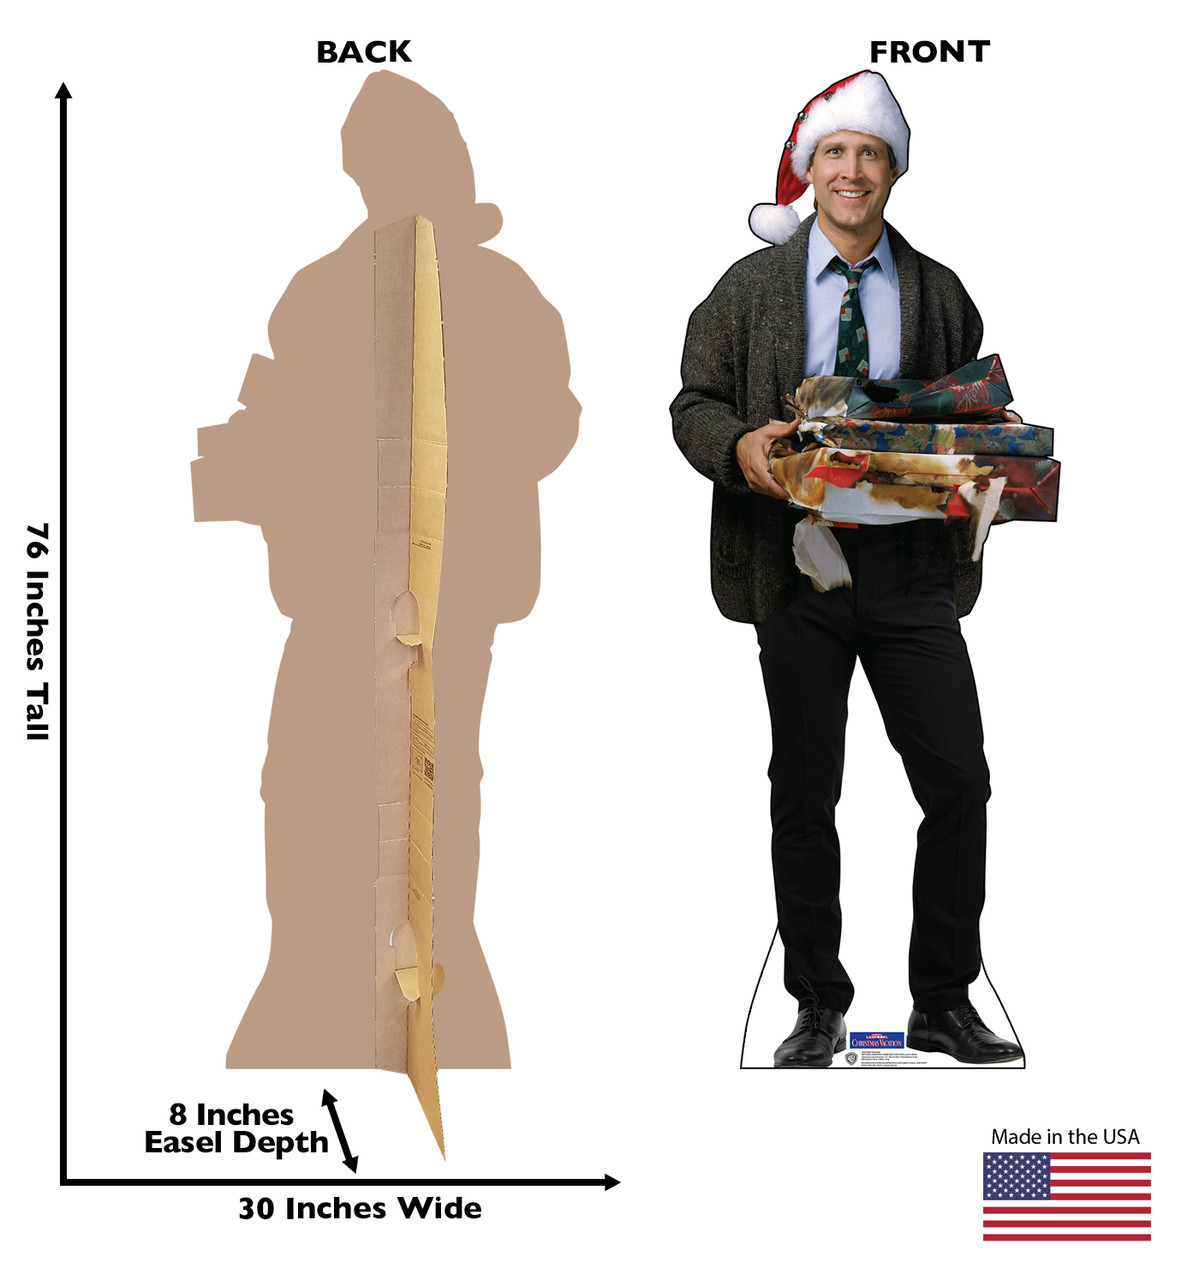 Clark Griswold cardboard standee with back and front dimensions.